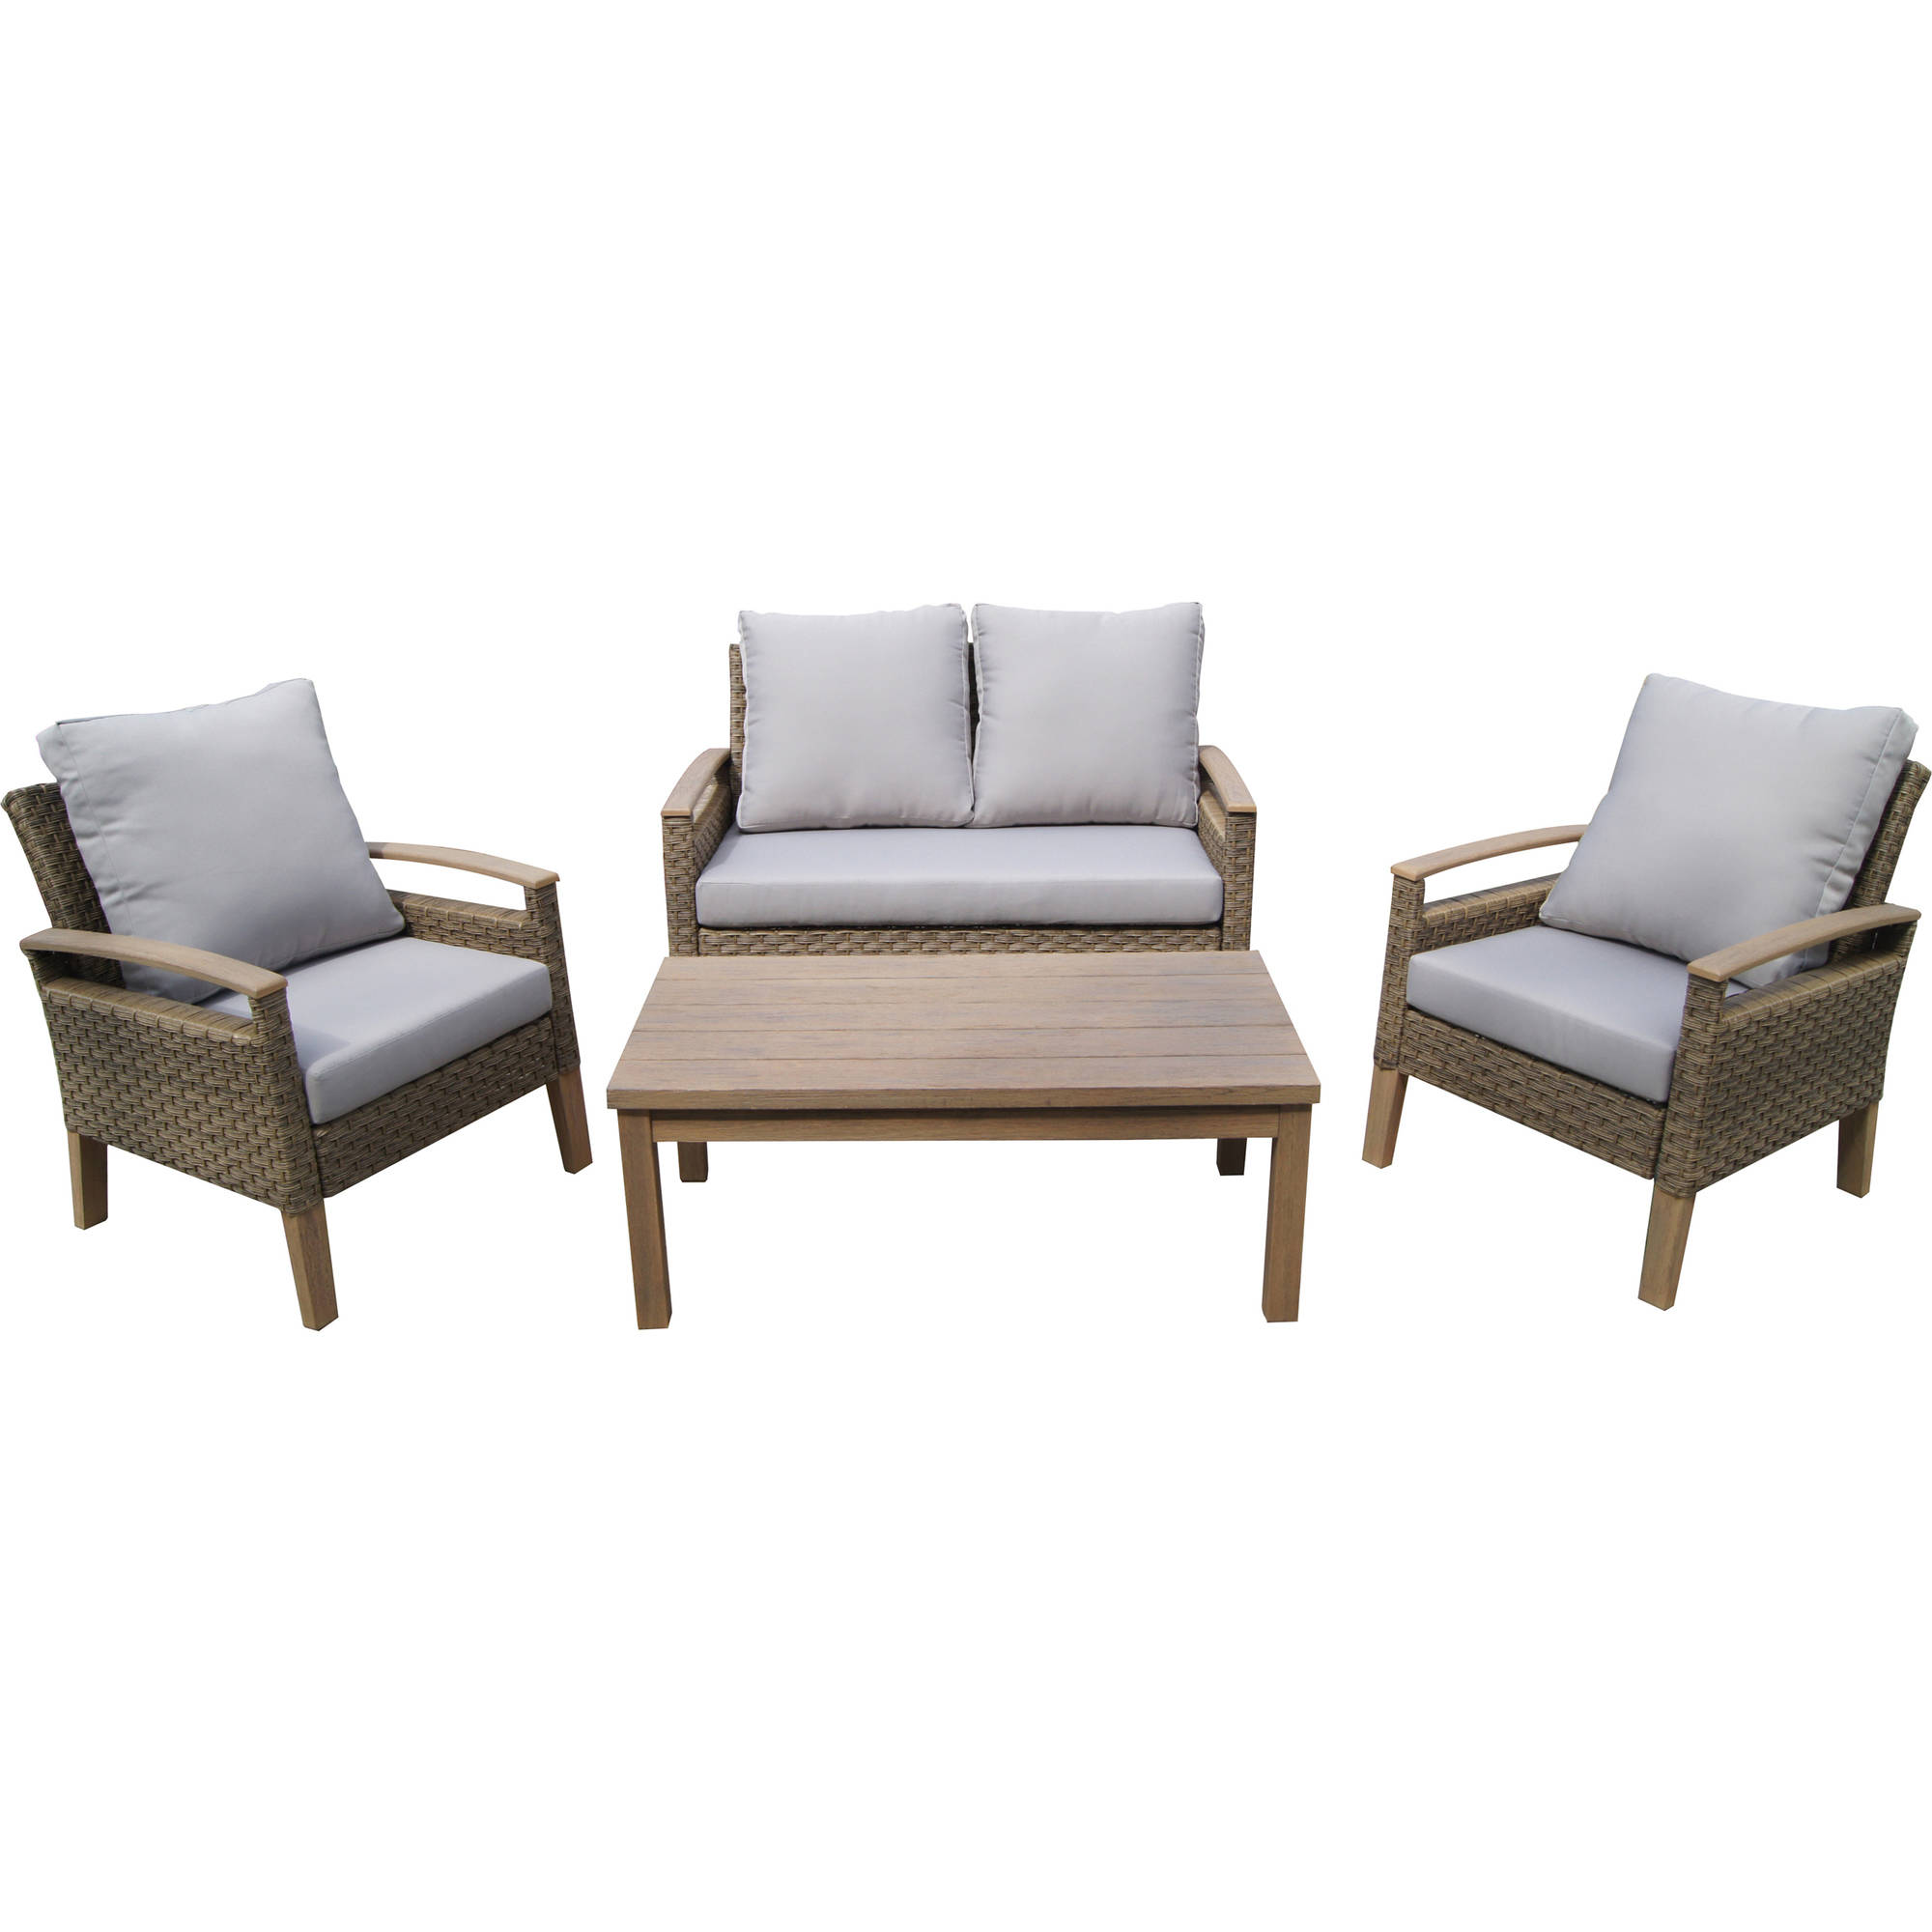 Incadozo 4-Piece Outdoor Wicker Conversation Set, Brown with Gray Cushions by